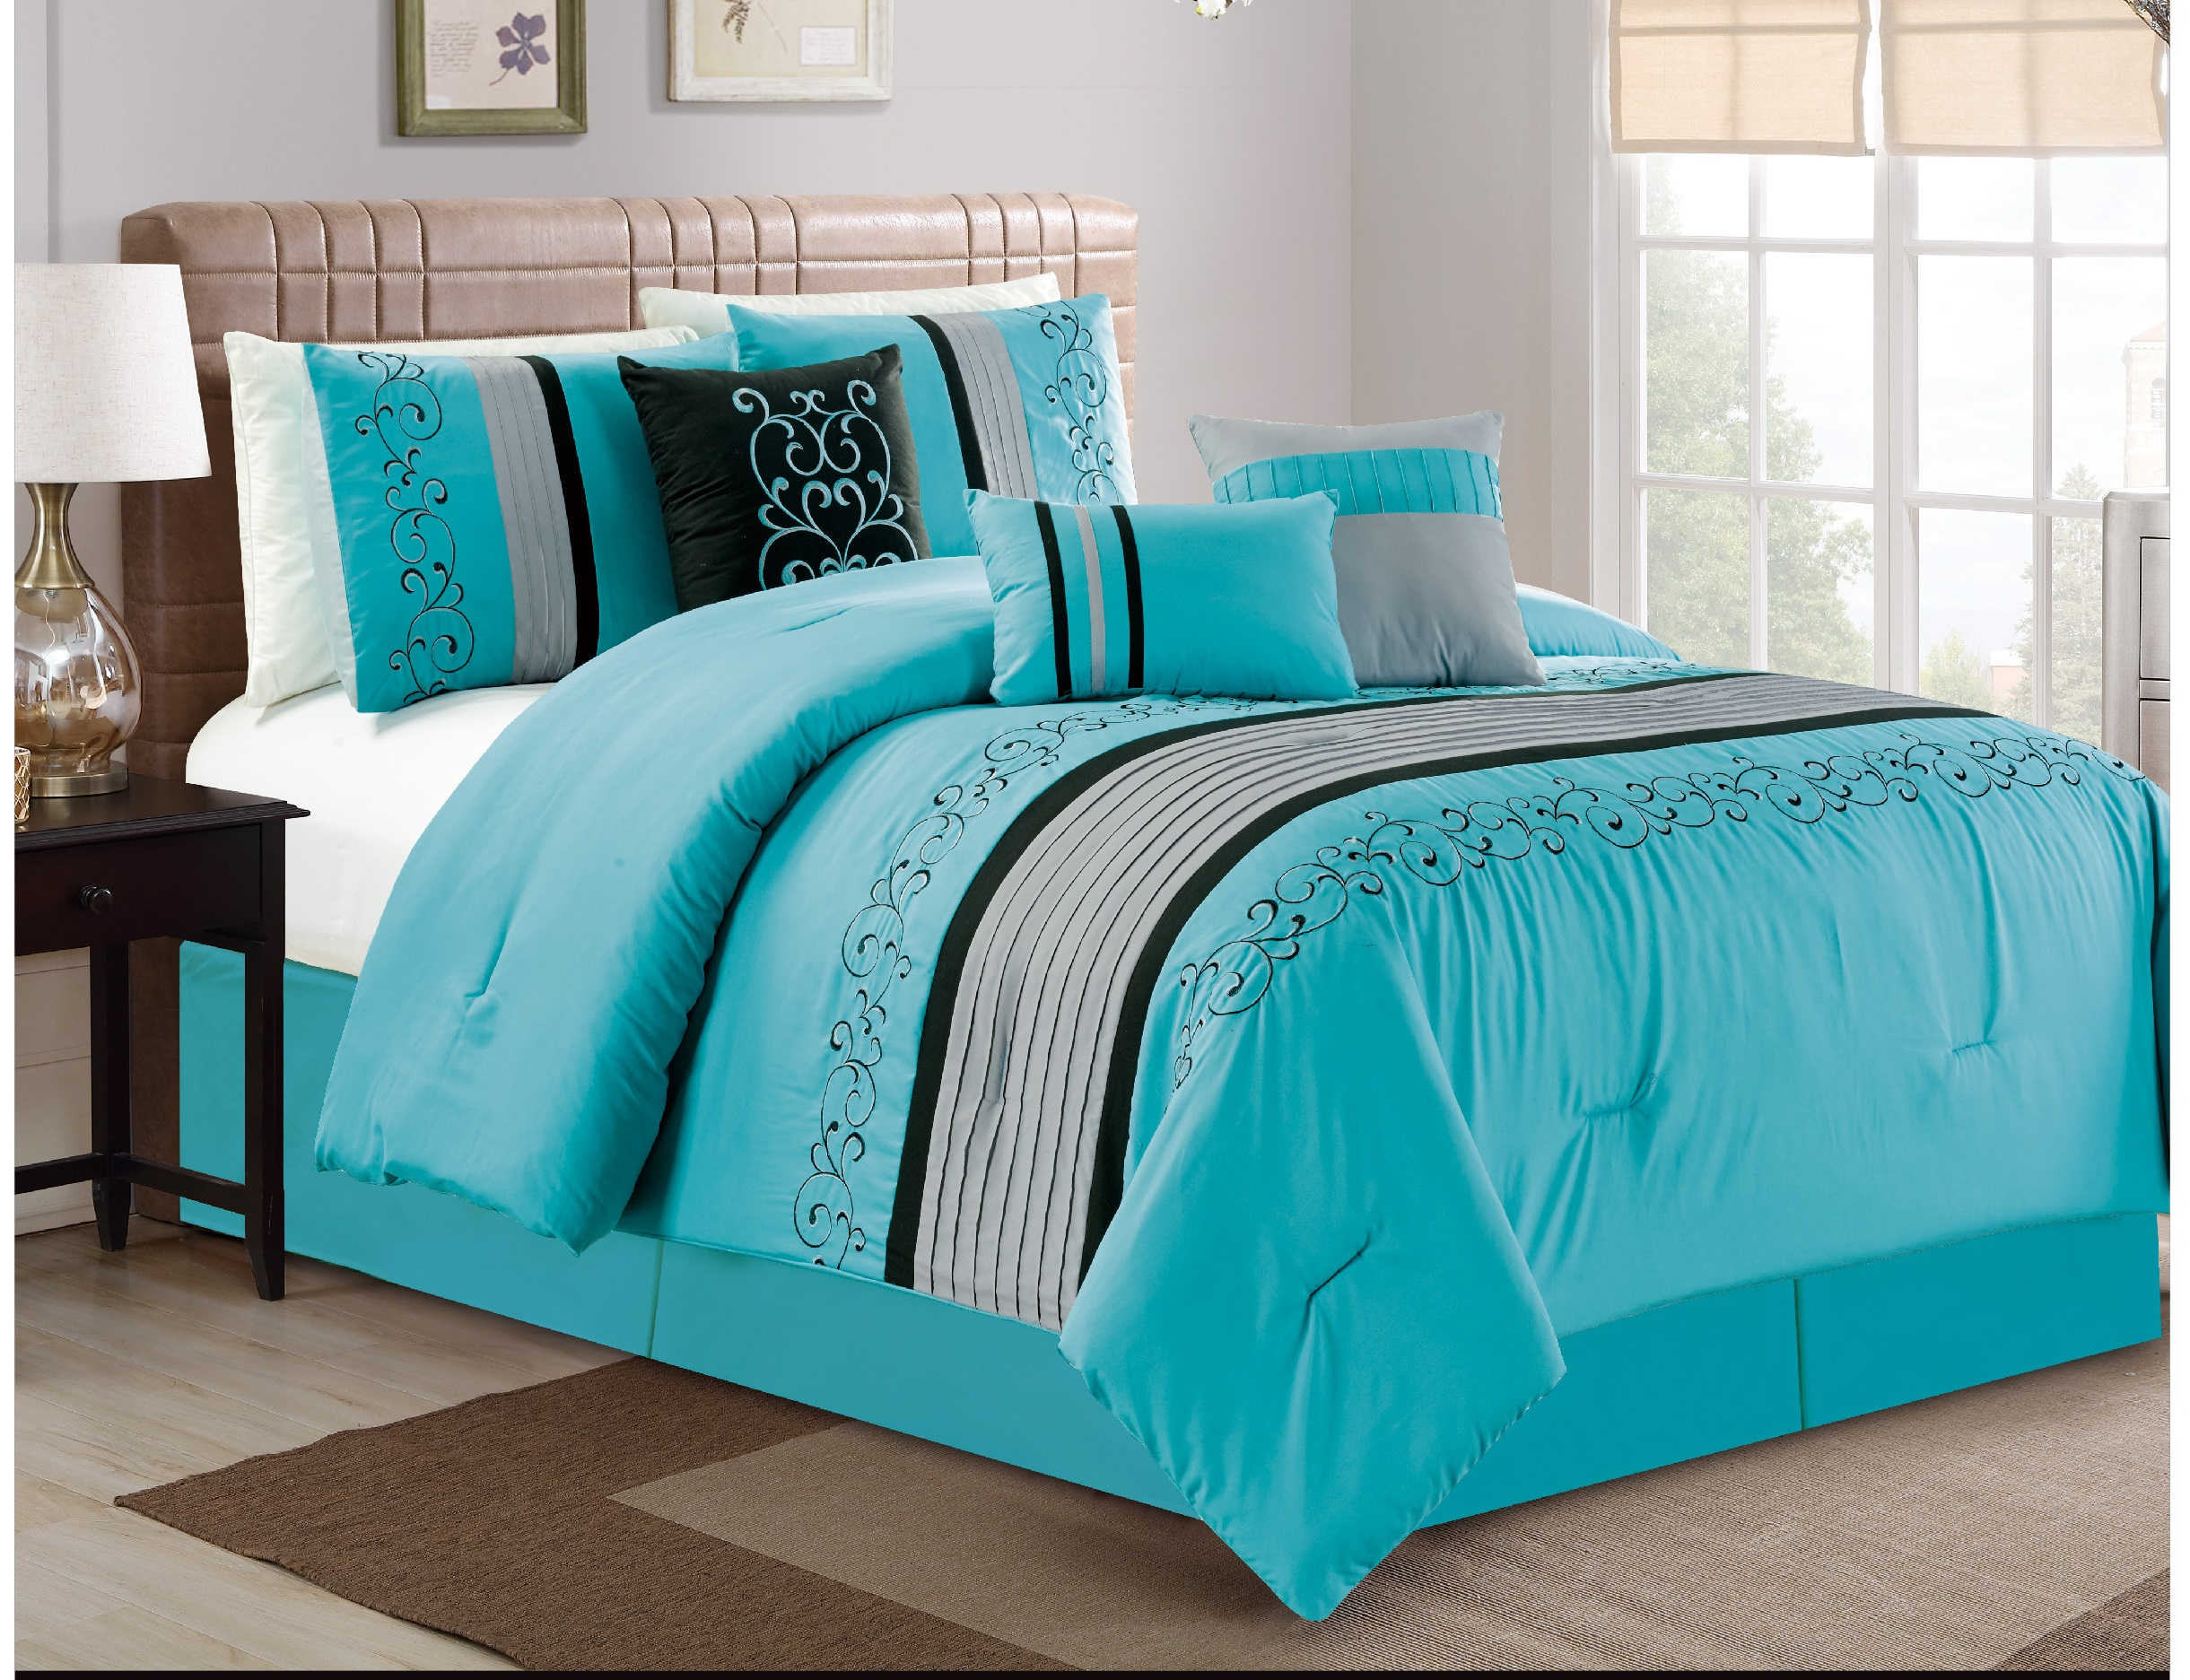 turquoise comforter set king Turquoise Comforter Set   King | National Credit Direct turquoise comforter set king